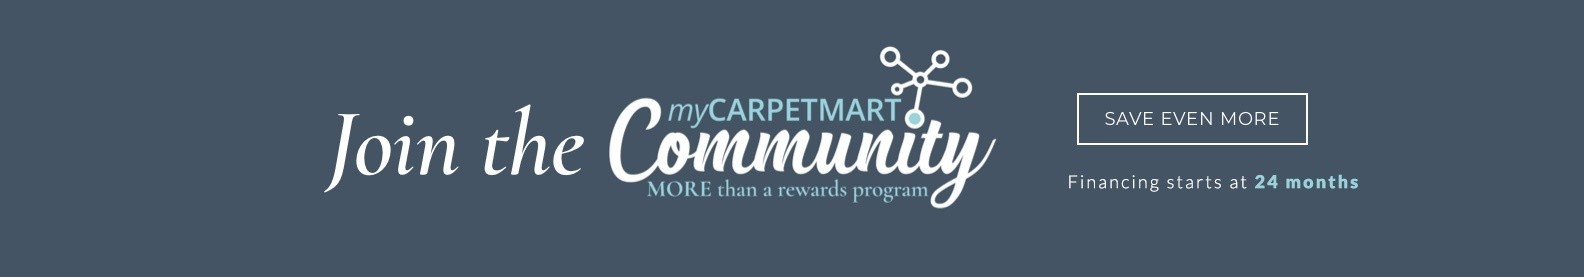 Join-the-community-financing-banner